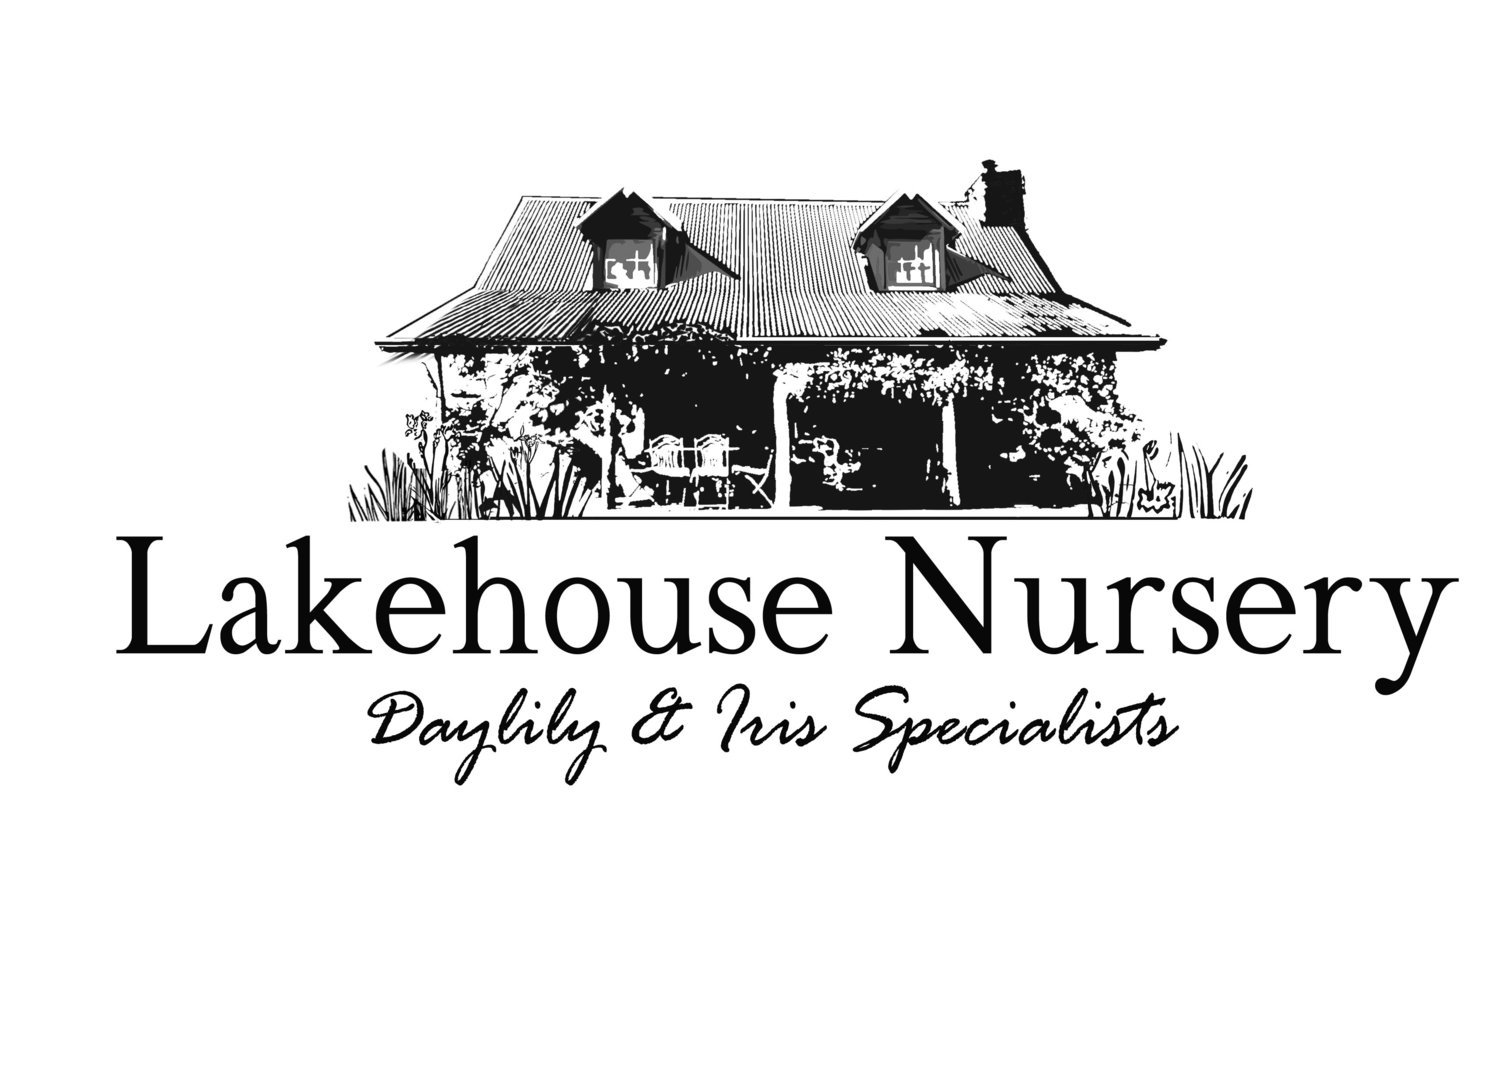 Lakehouse Nursery